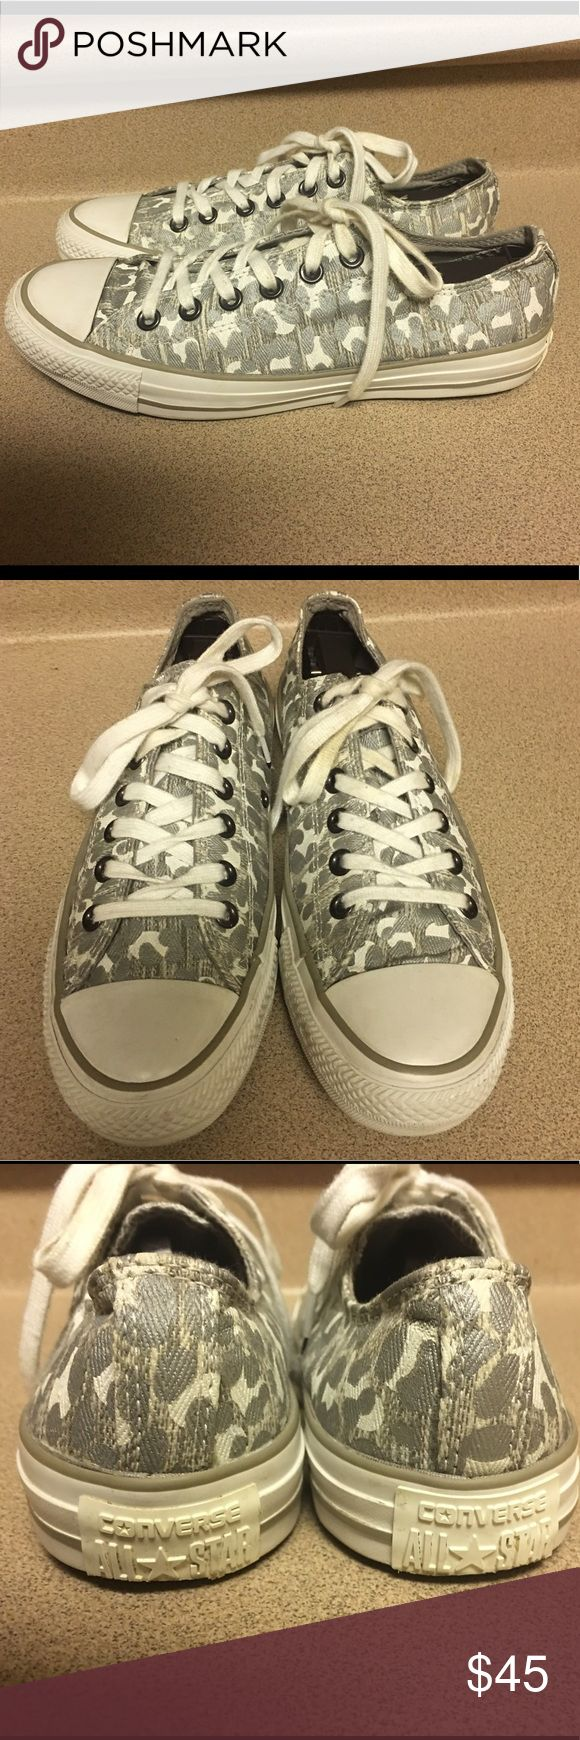 Converse Snow Leopard OX Women's Sz 8.5 Converse Chuck Taylor Snow Leopard OX 540388F Women's Fashion Sneakers Casual Size 8.5 Converse Shoes Sneakers